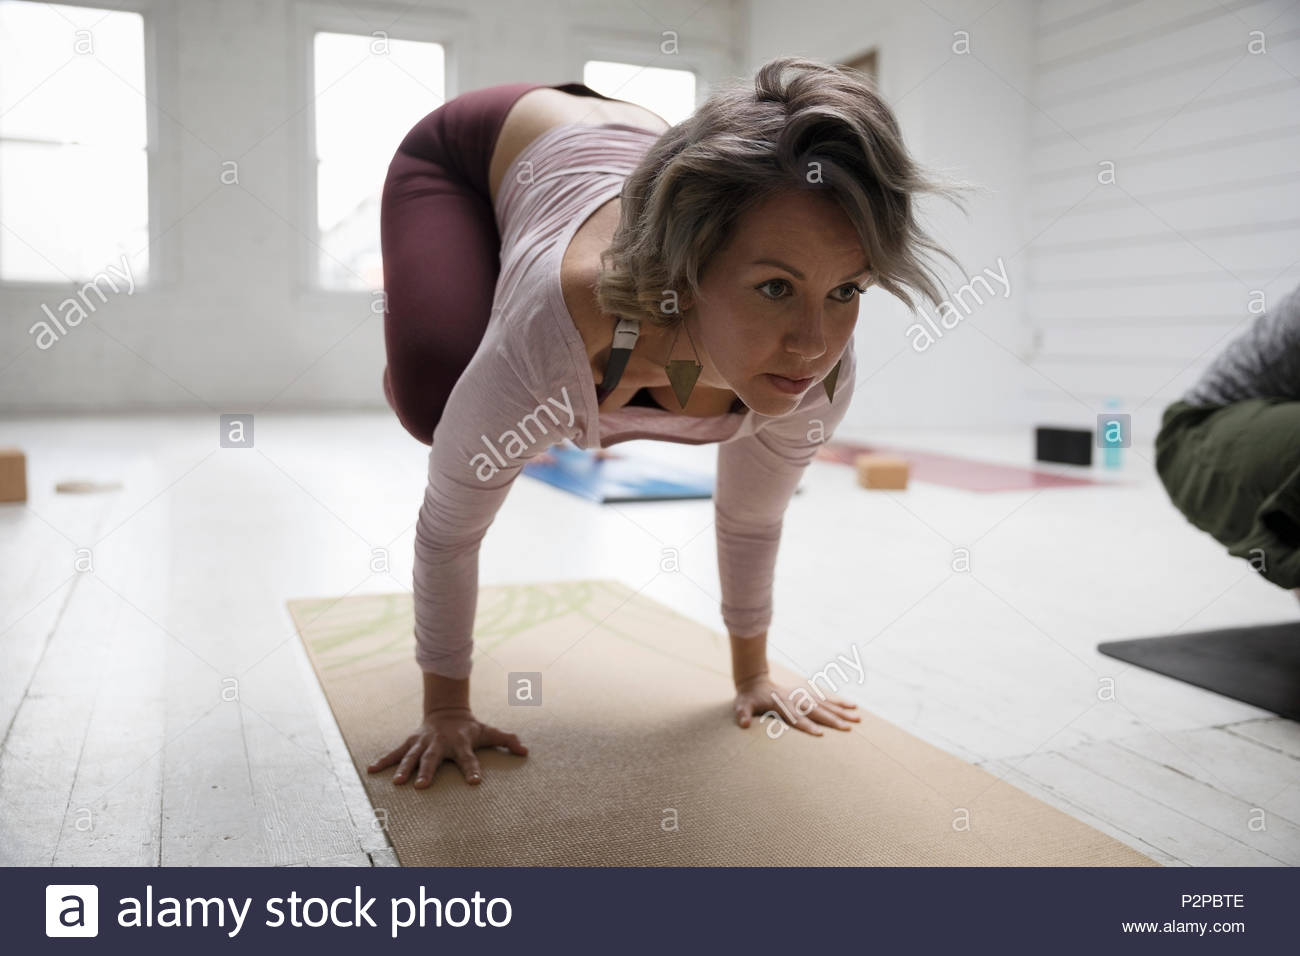 Focused woman practicing yoga crow pose in yoga class - Stock Image